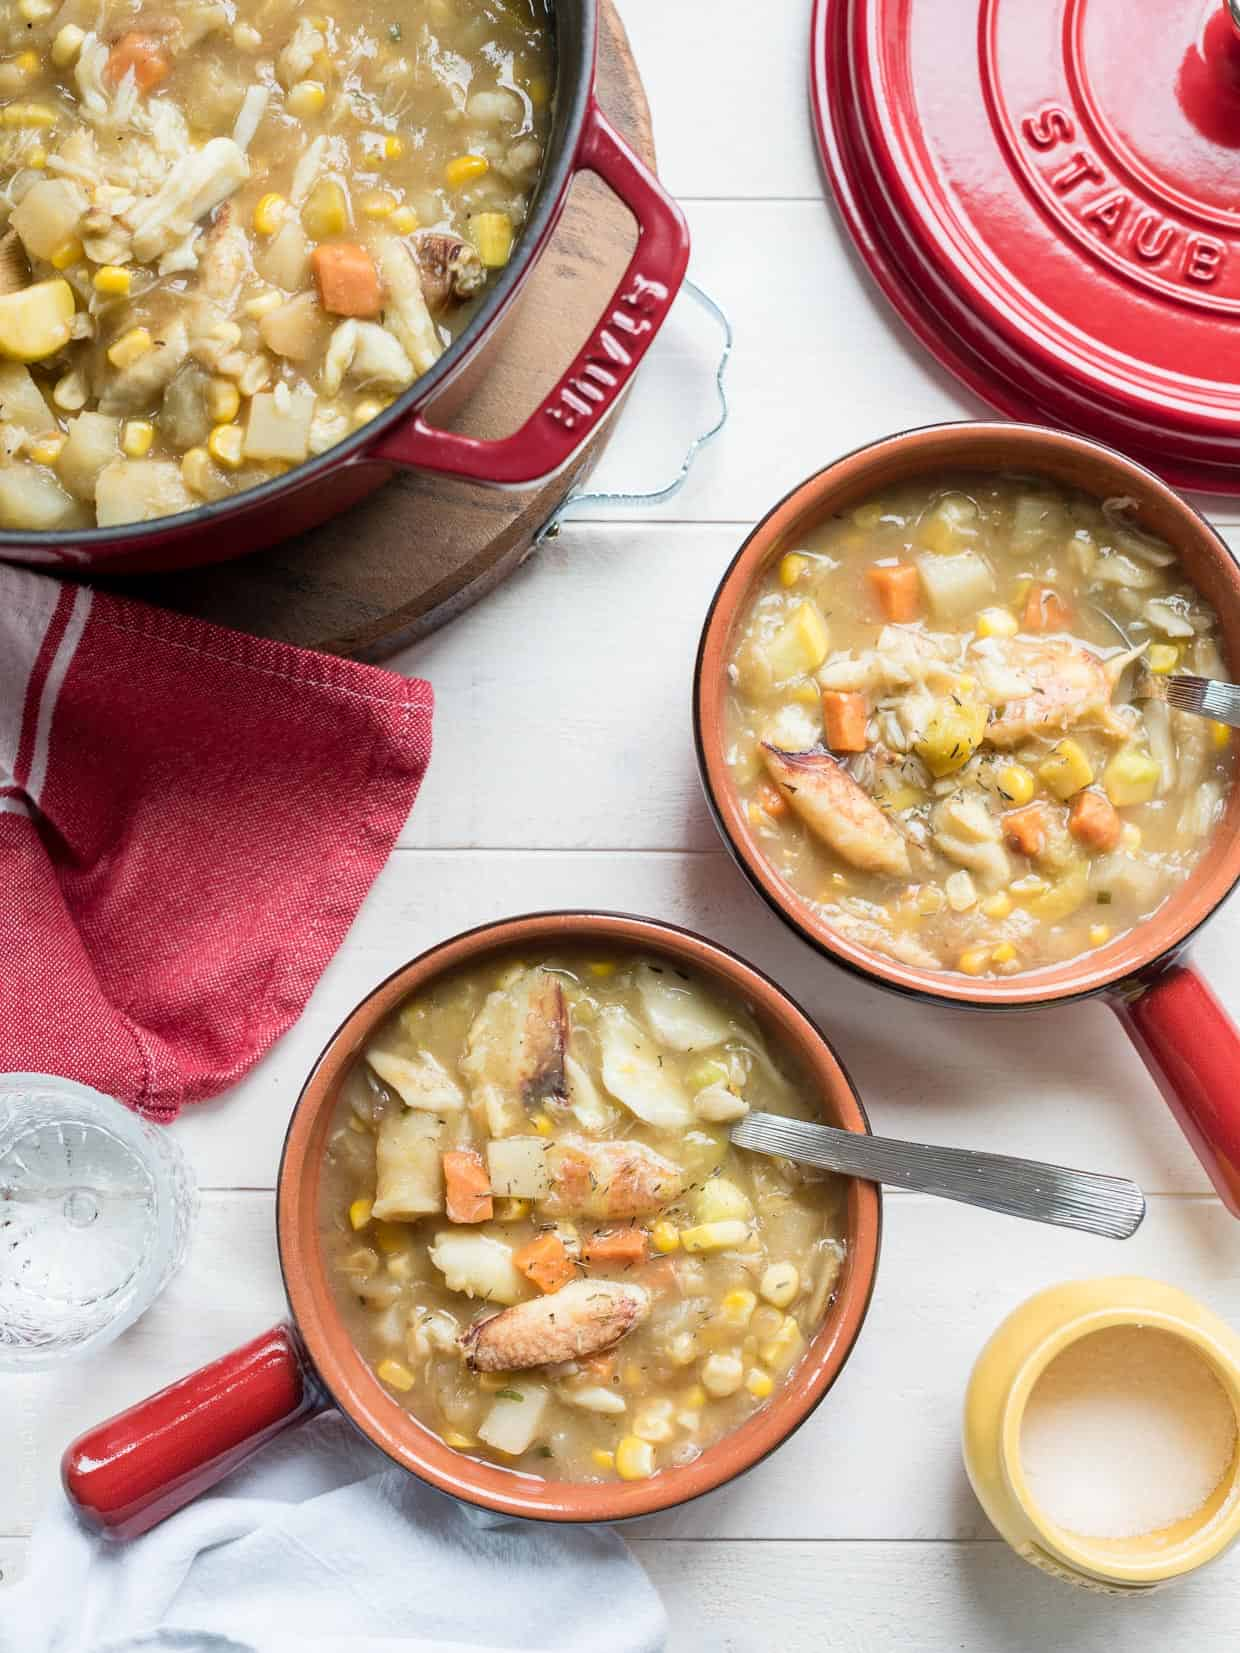 Hearty and wholesome: Crab and Corn Chowder (Dairy Free)